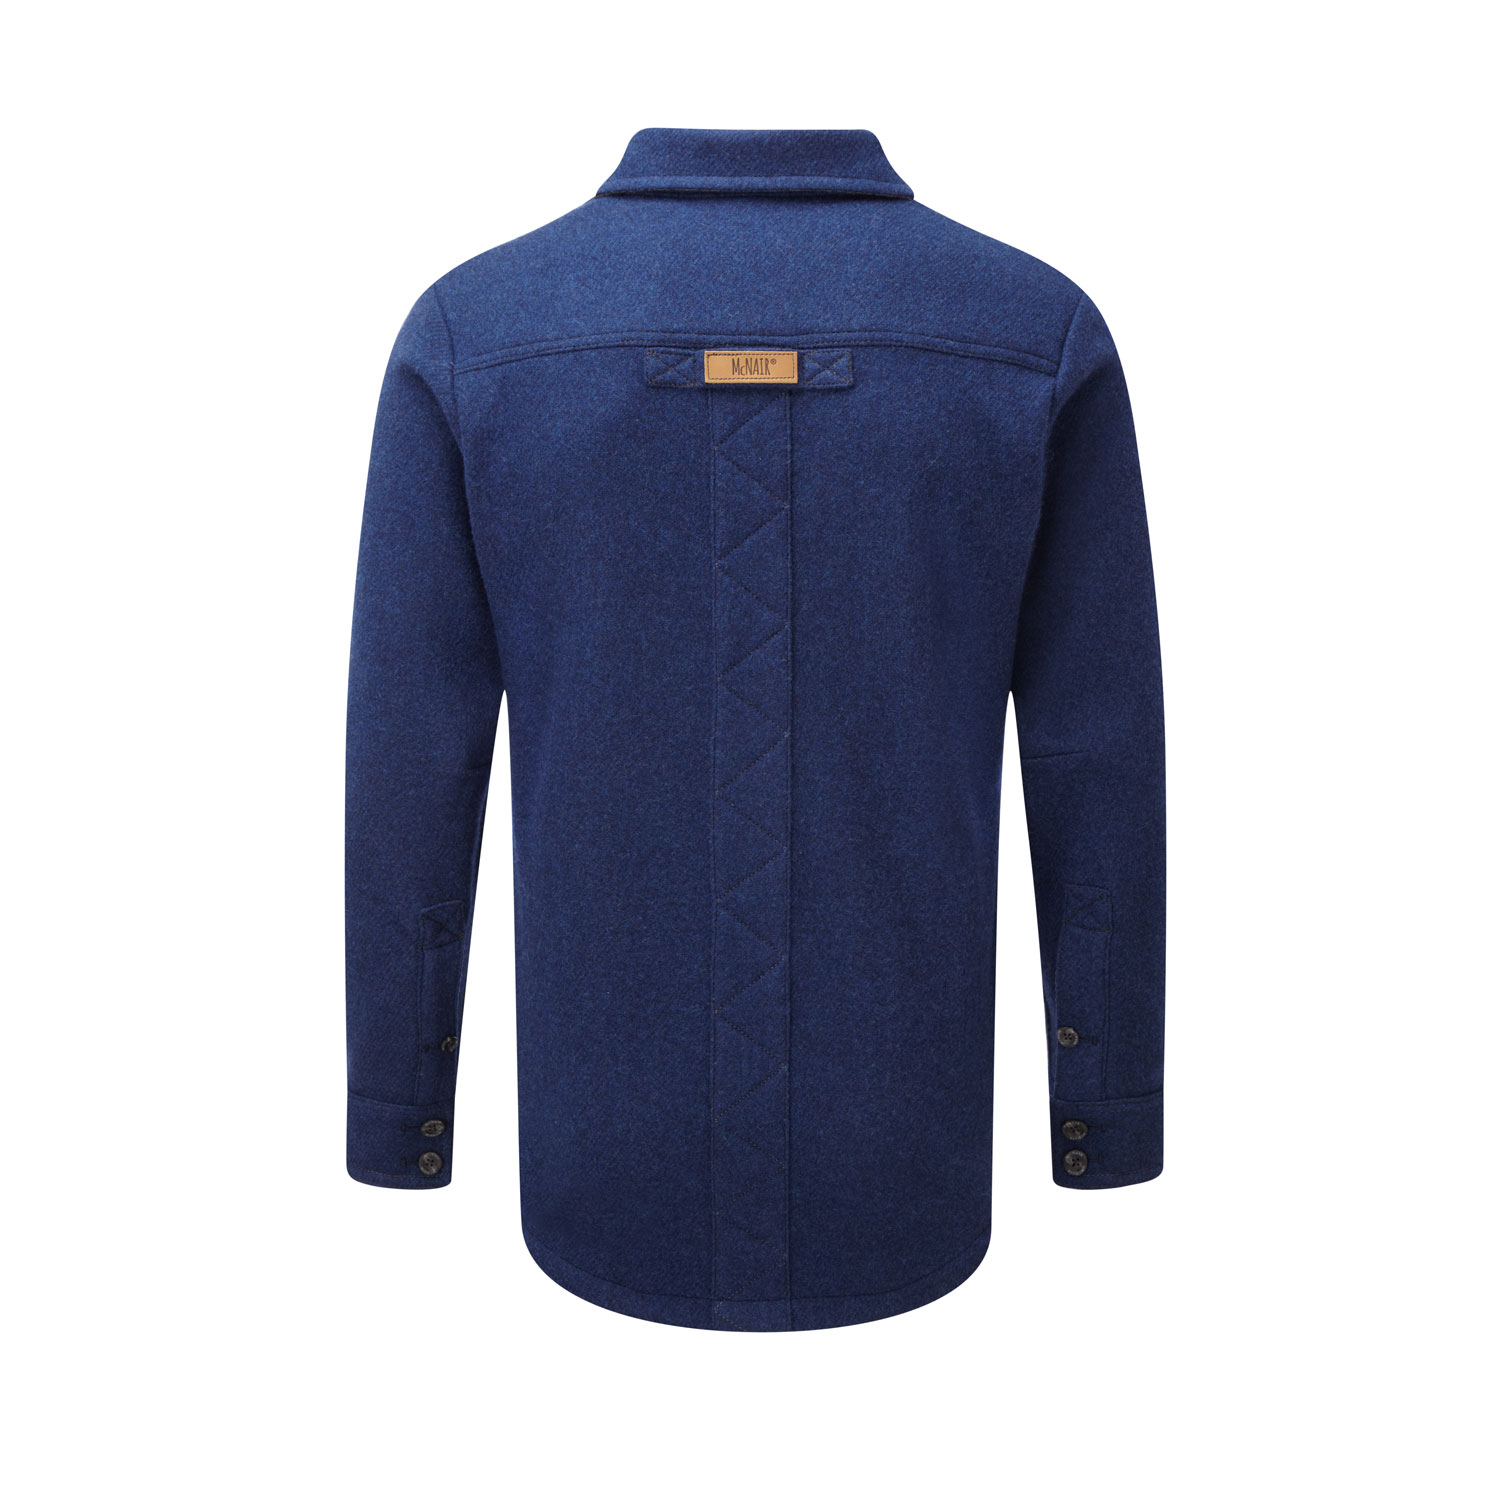 McNair men's merino fell shirt in blue